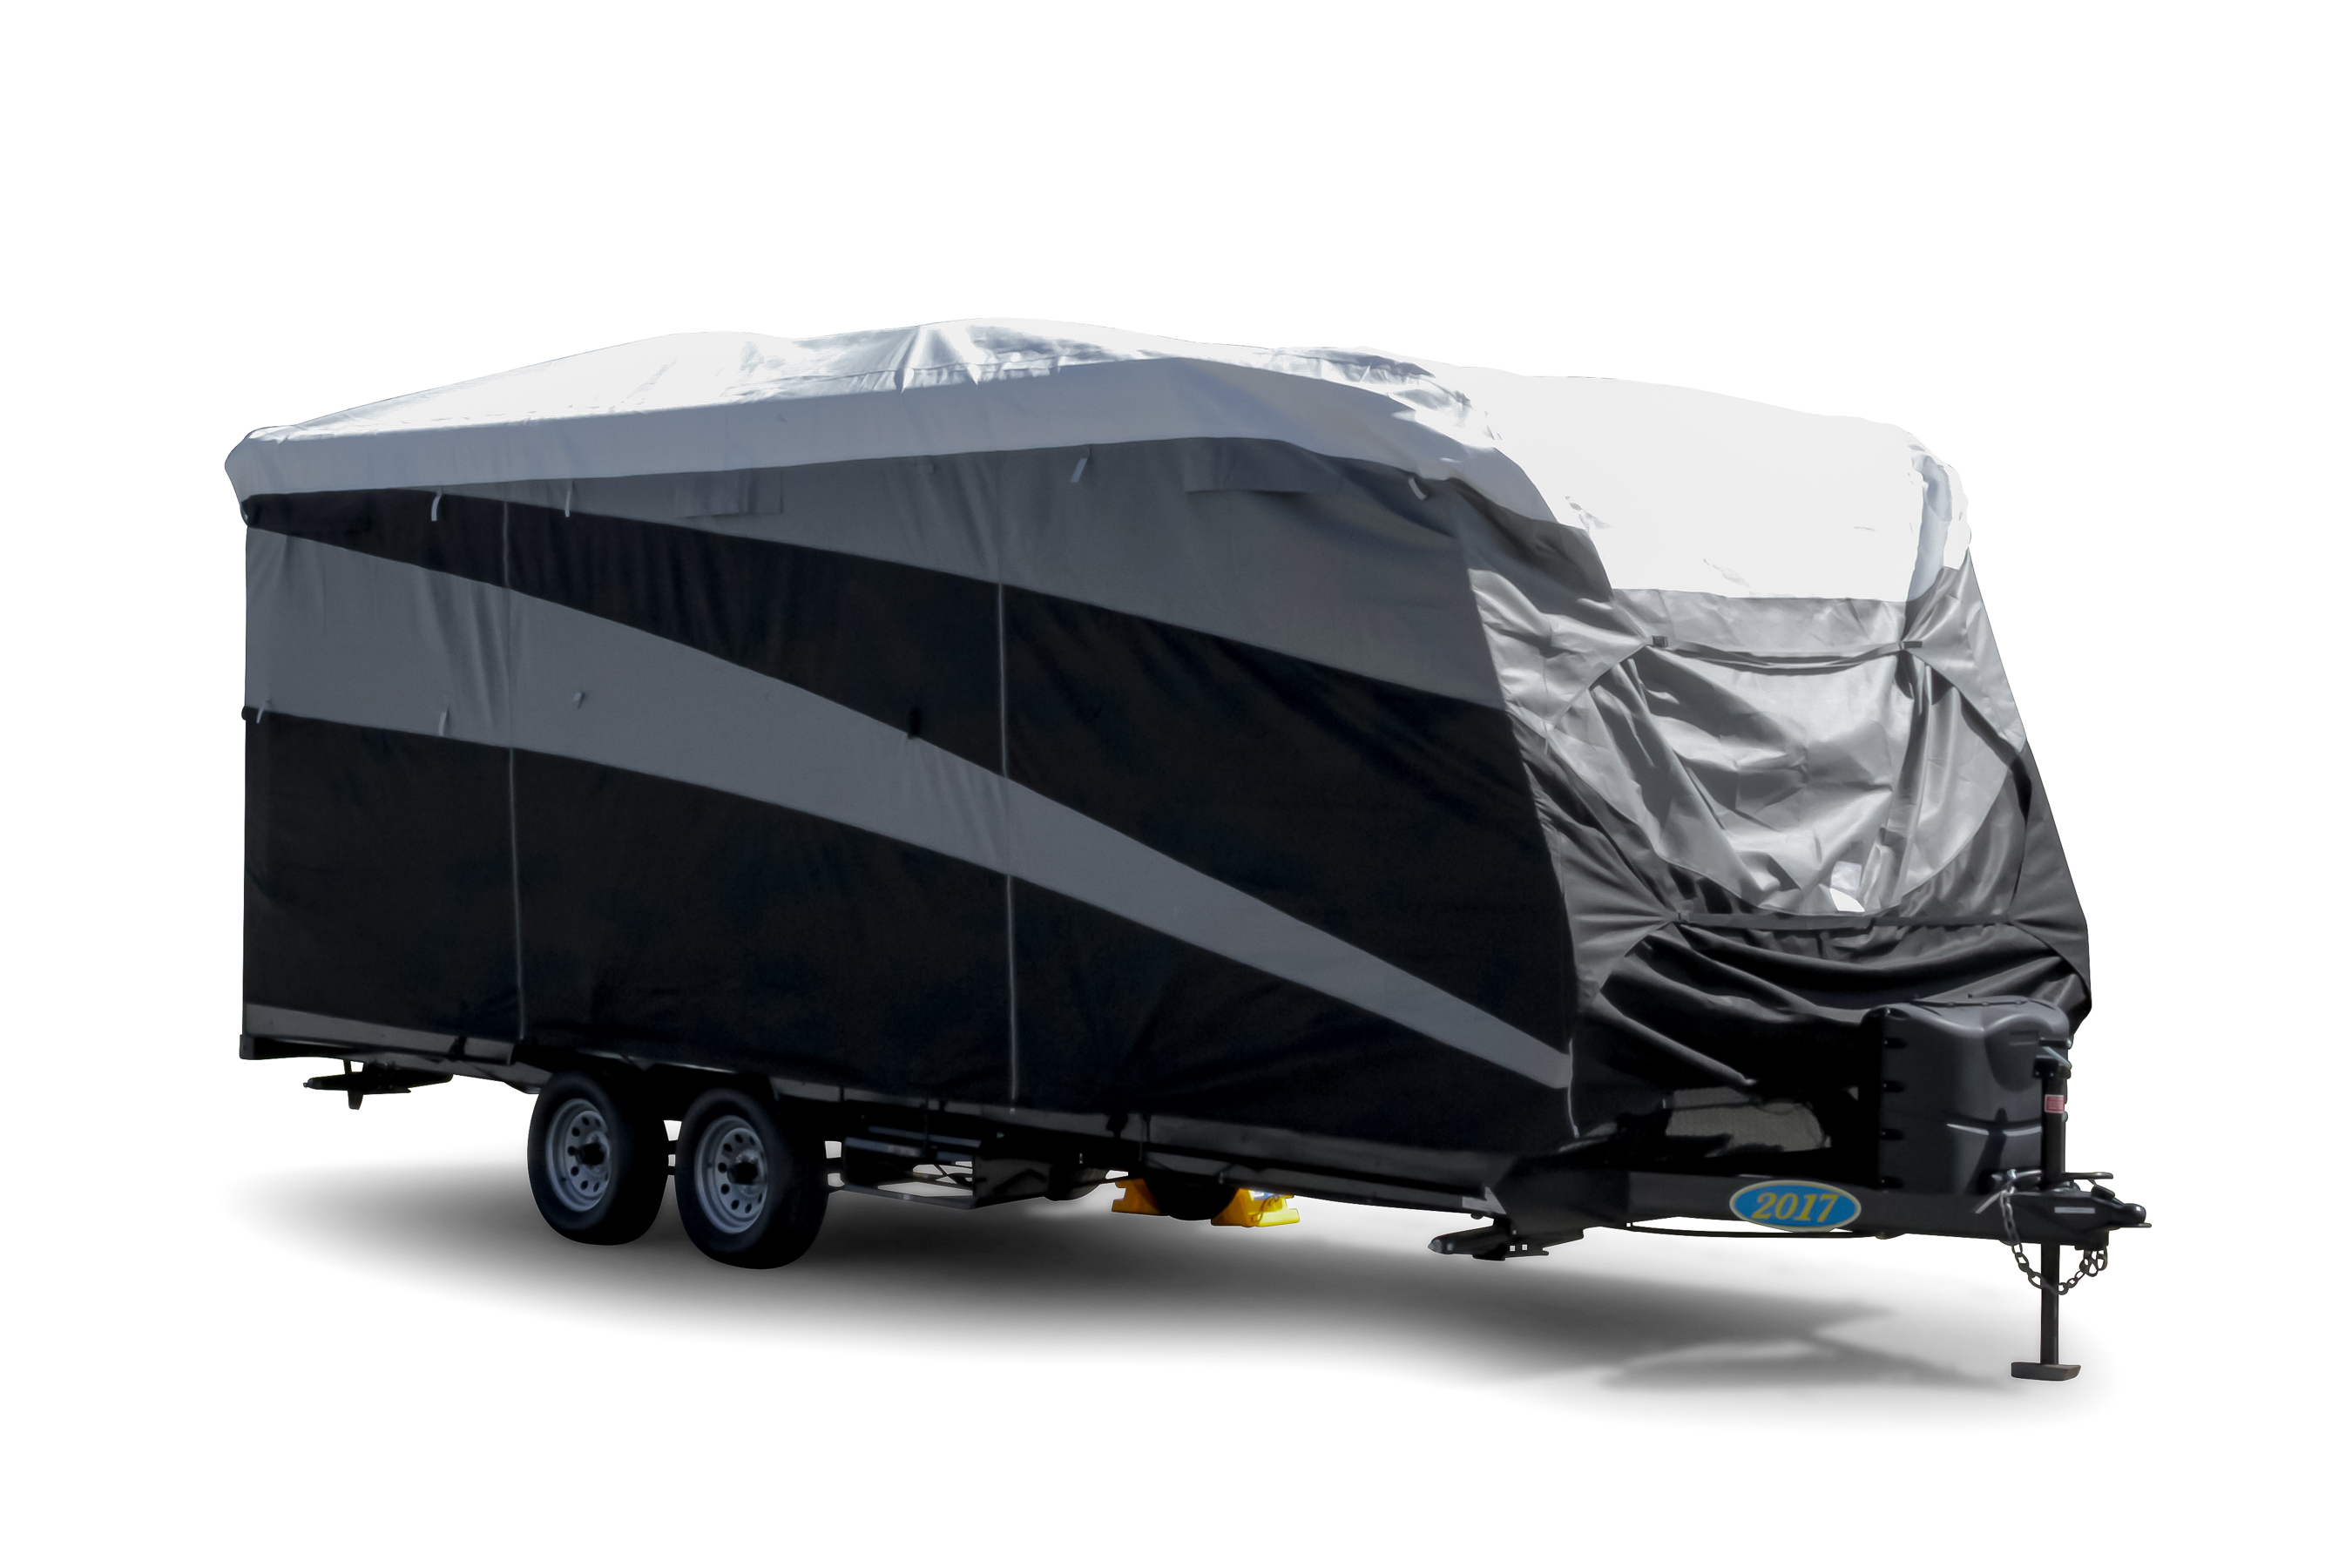 56122 Camco 15-18 ULTRAGuard Supreme RV Cover-Extremely Durable Design Fits Travel Trailers Weatherproof with UV Protection and Dupont Tyvek Top